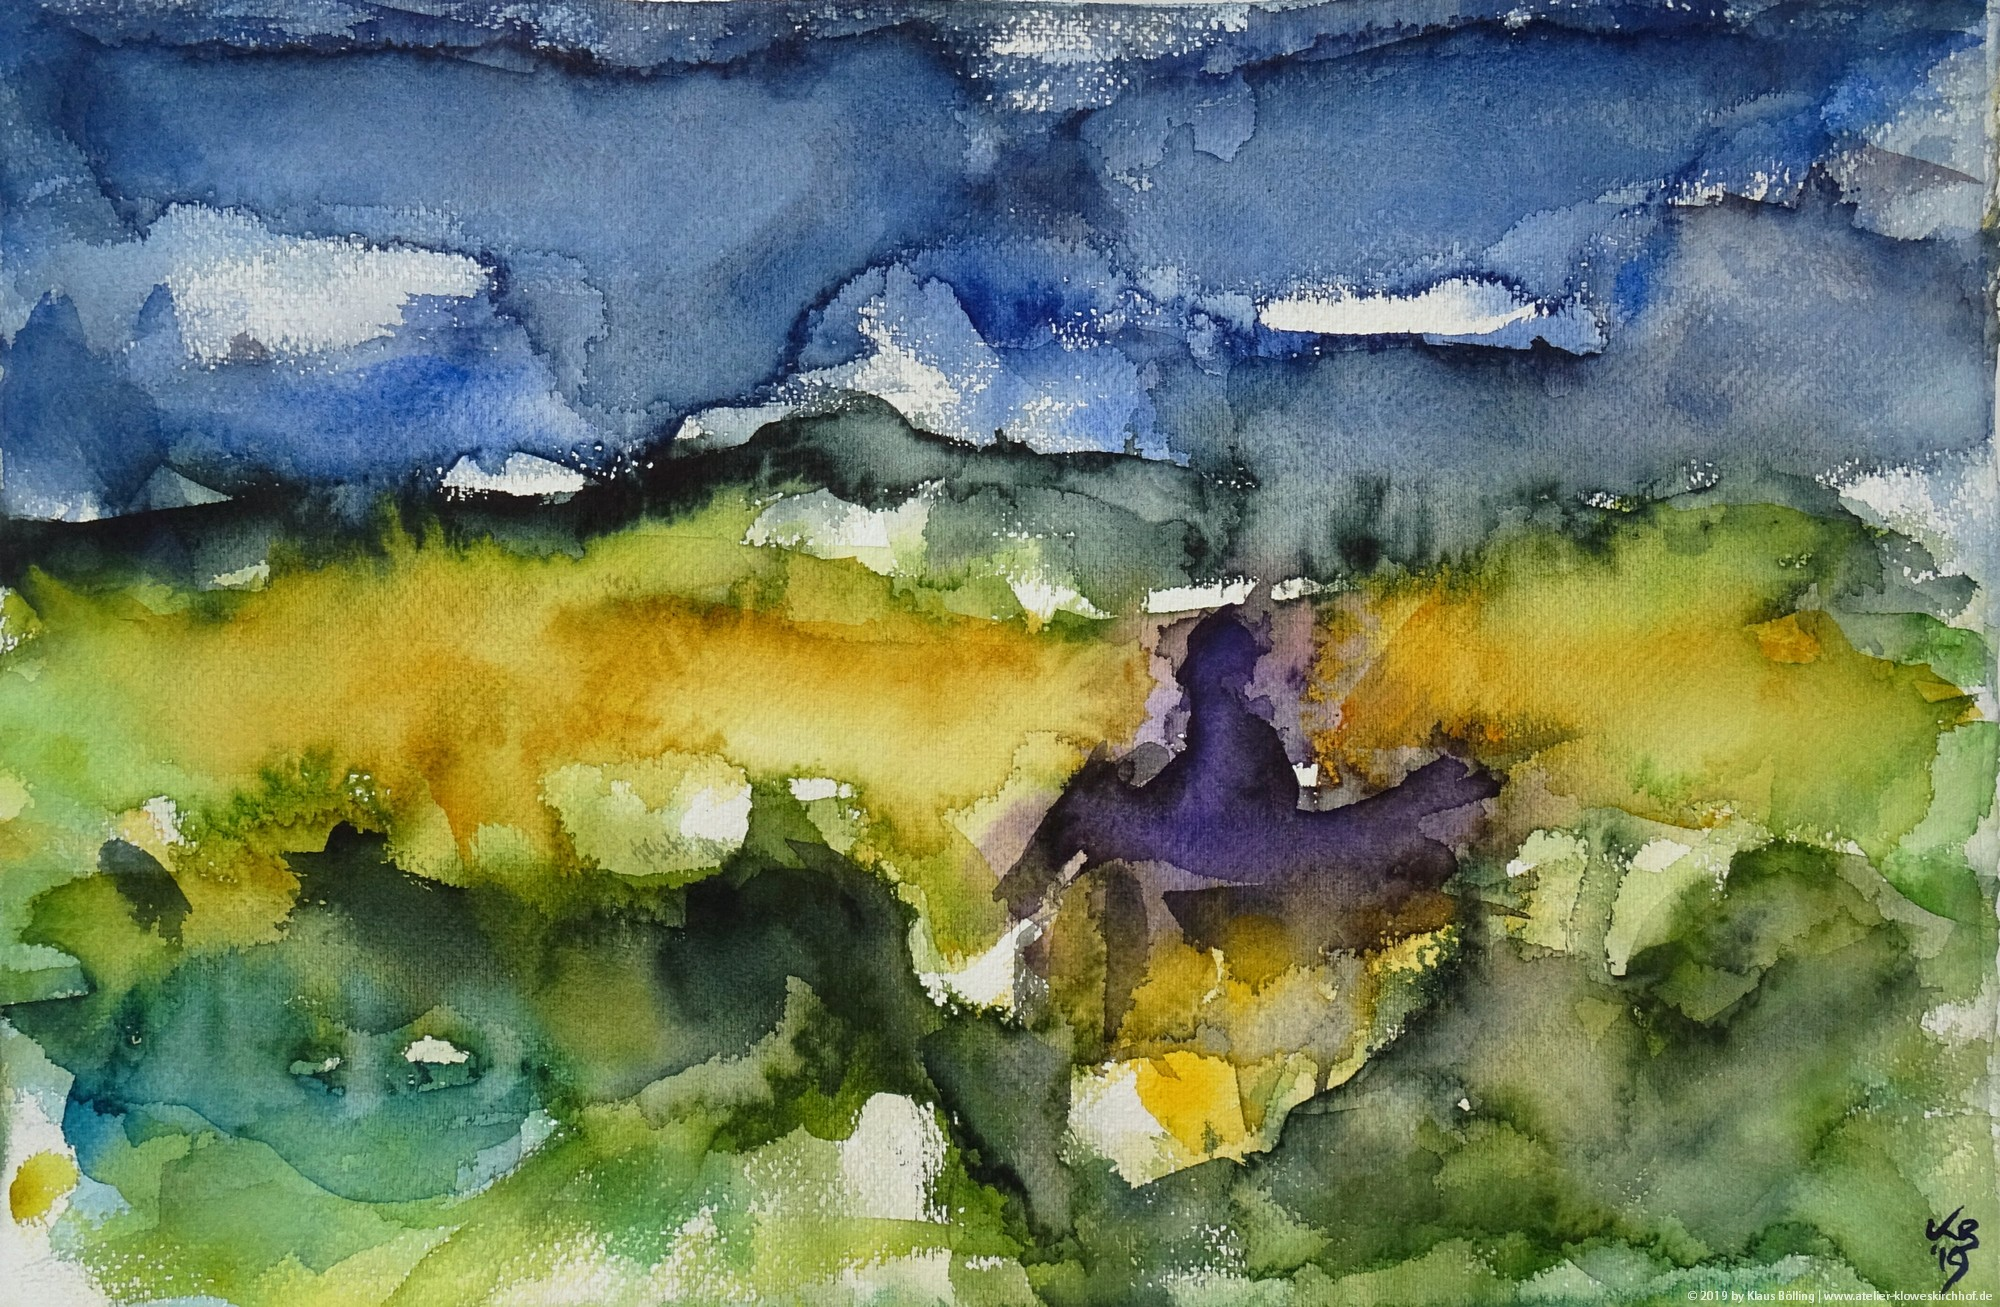 Orkney, Quoyloo, Orkney Brewery, Watercolour 50 x 32,5 cm, © 2019 by Klaus Bölling